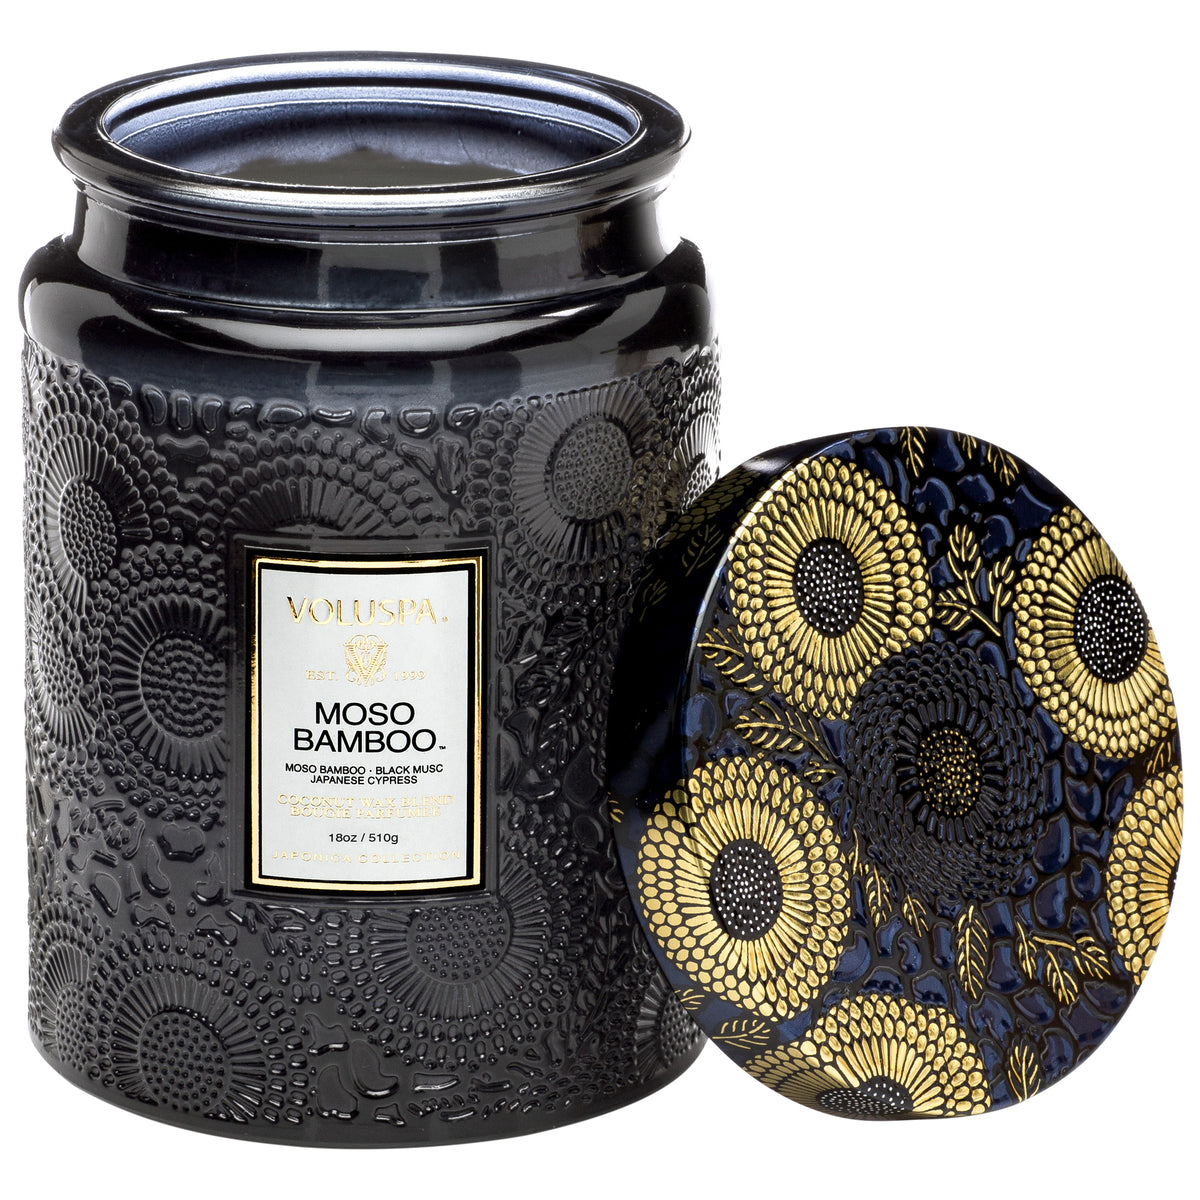 Moso Bamboo - Large Jar Candle - 2